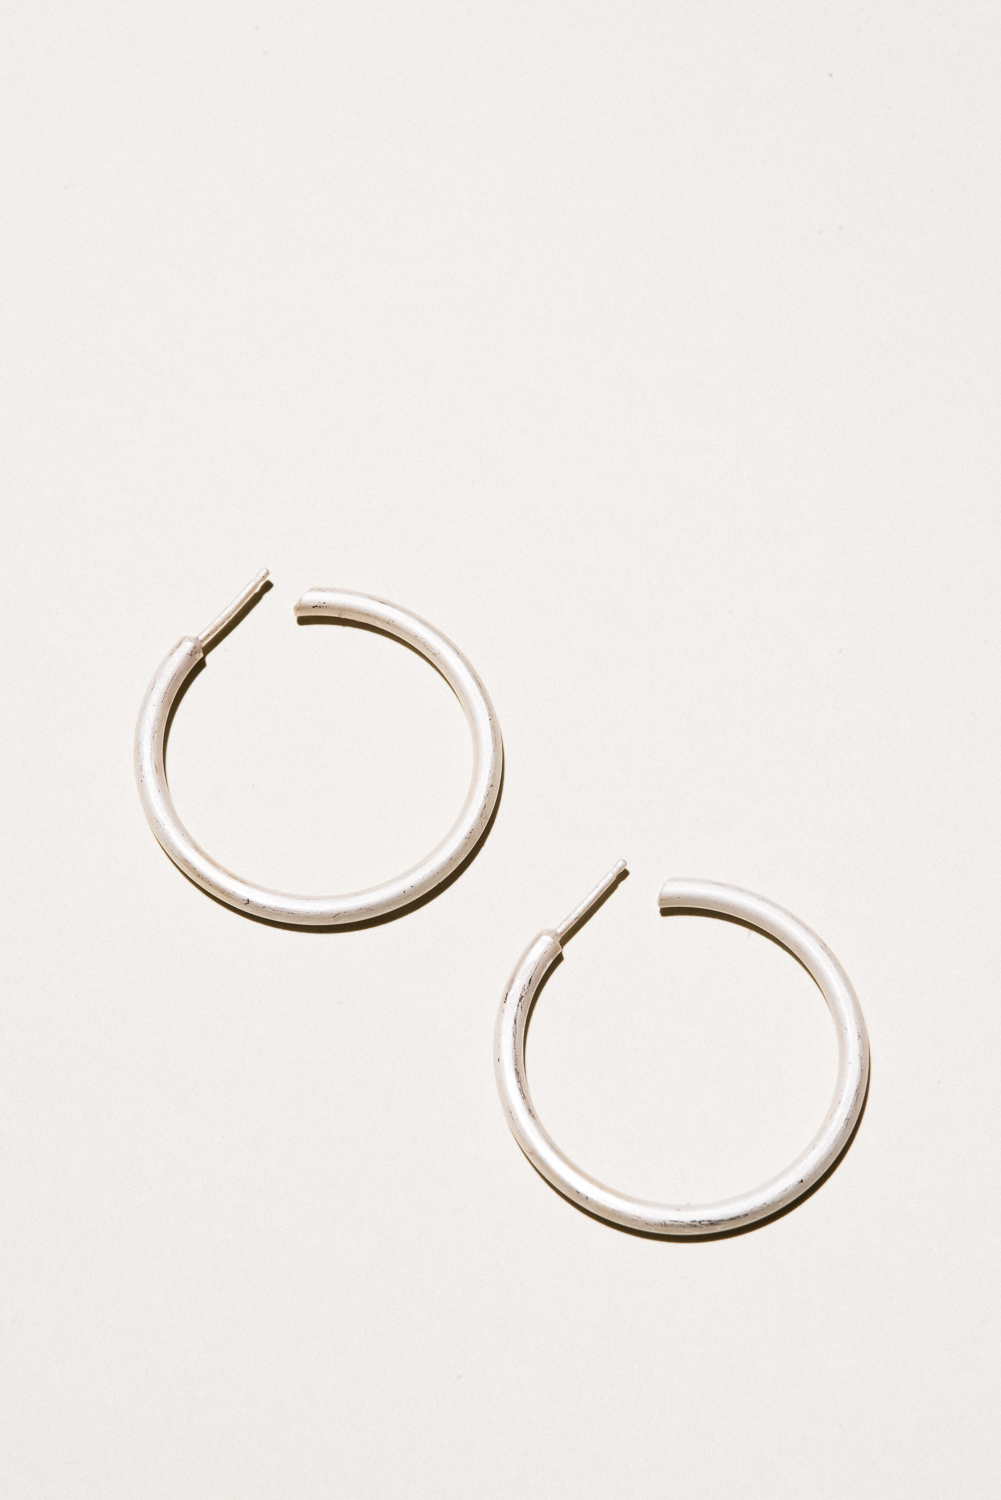 Large Silver Classic Hoops - 1.3 in diameterSterling Silver, Raw FinishHand Smithed$120